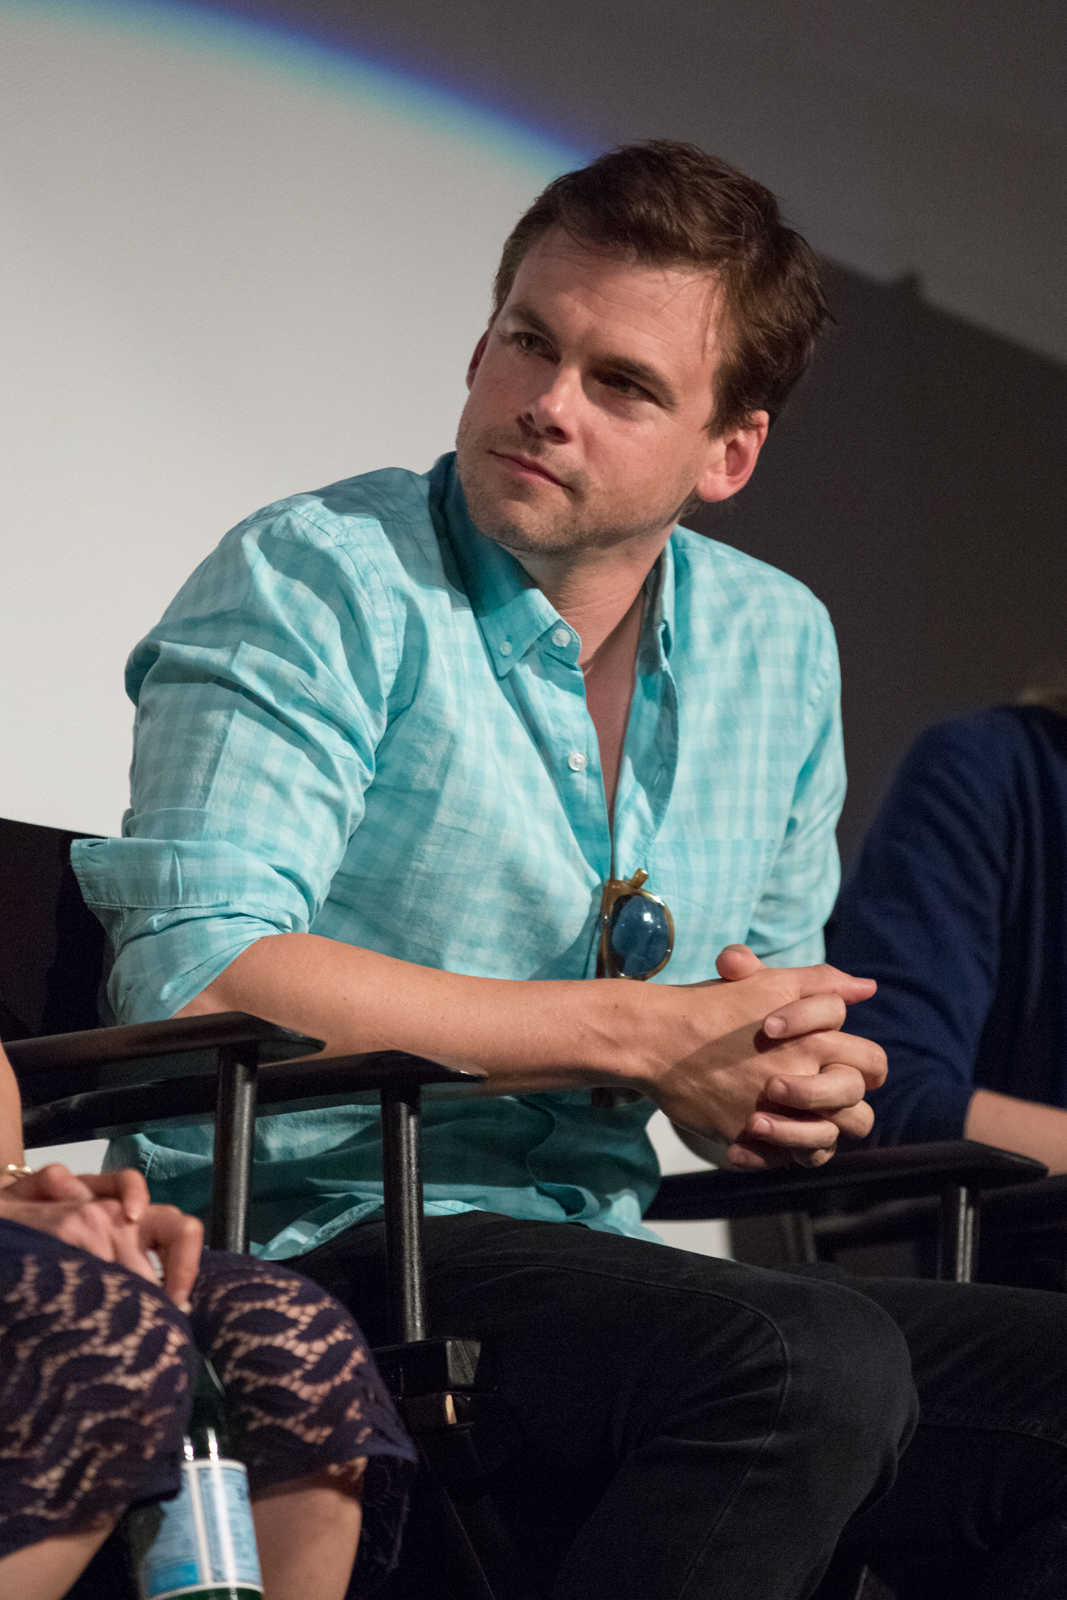 The 40-year old son of father (?) and mother(?) Tommy Dewey in 2018 photo. Tommy Dewey earned a  million dollar salary - leaving the net worth at 1 million in 2018